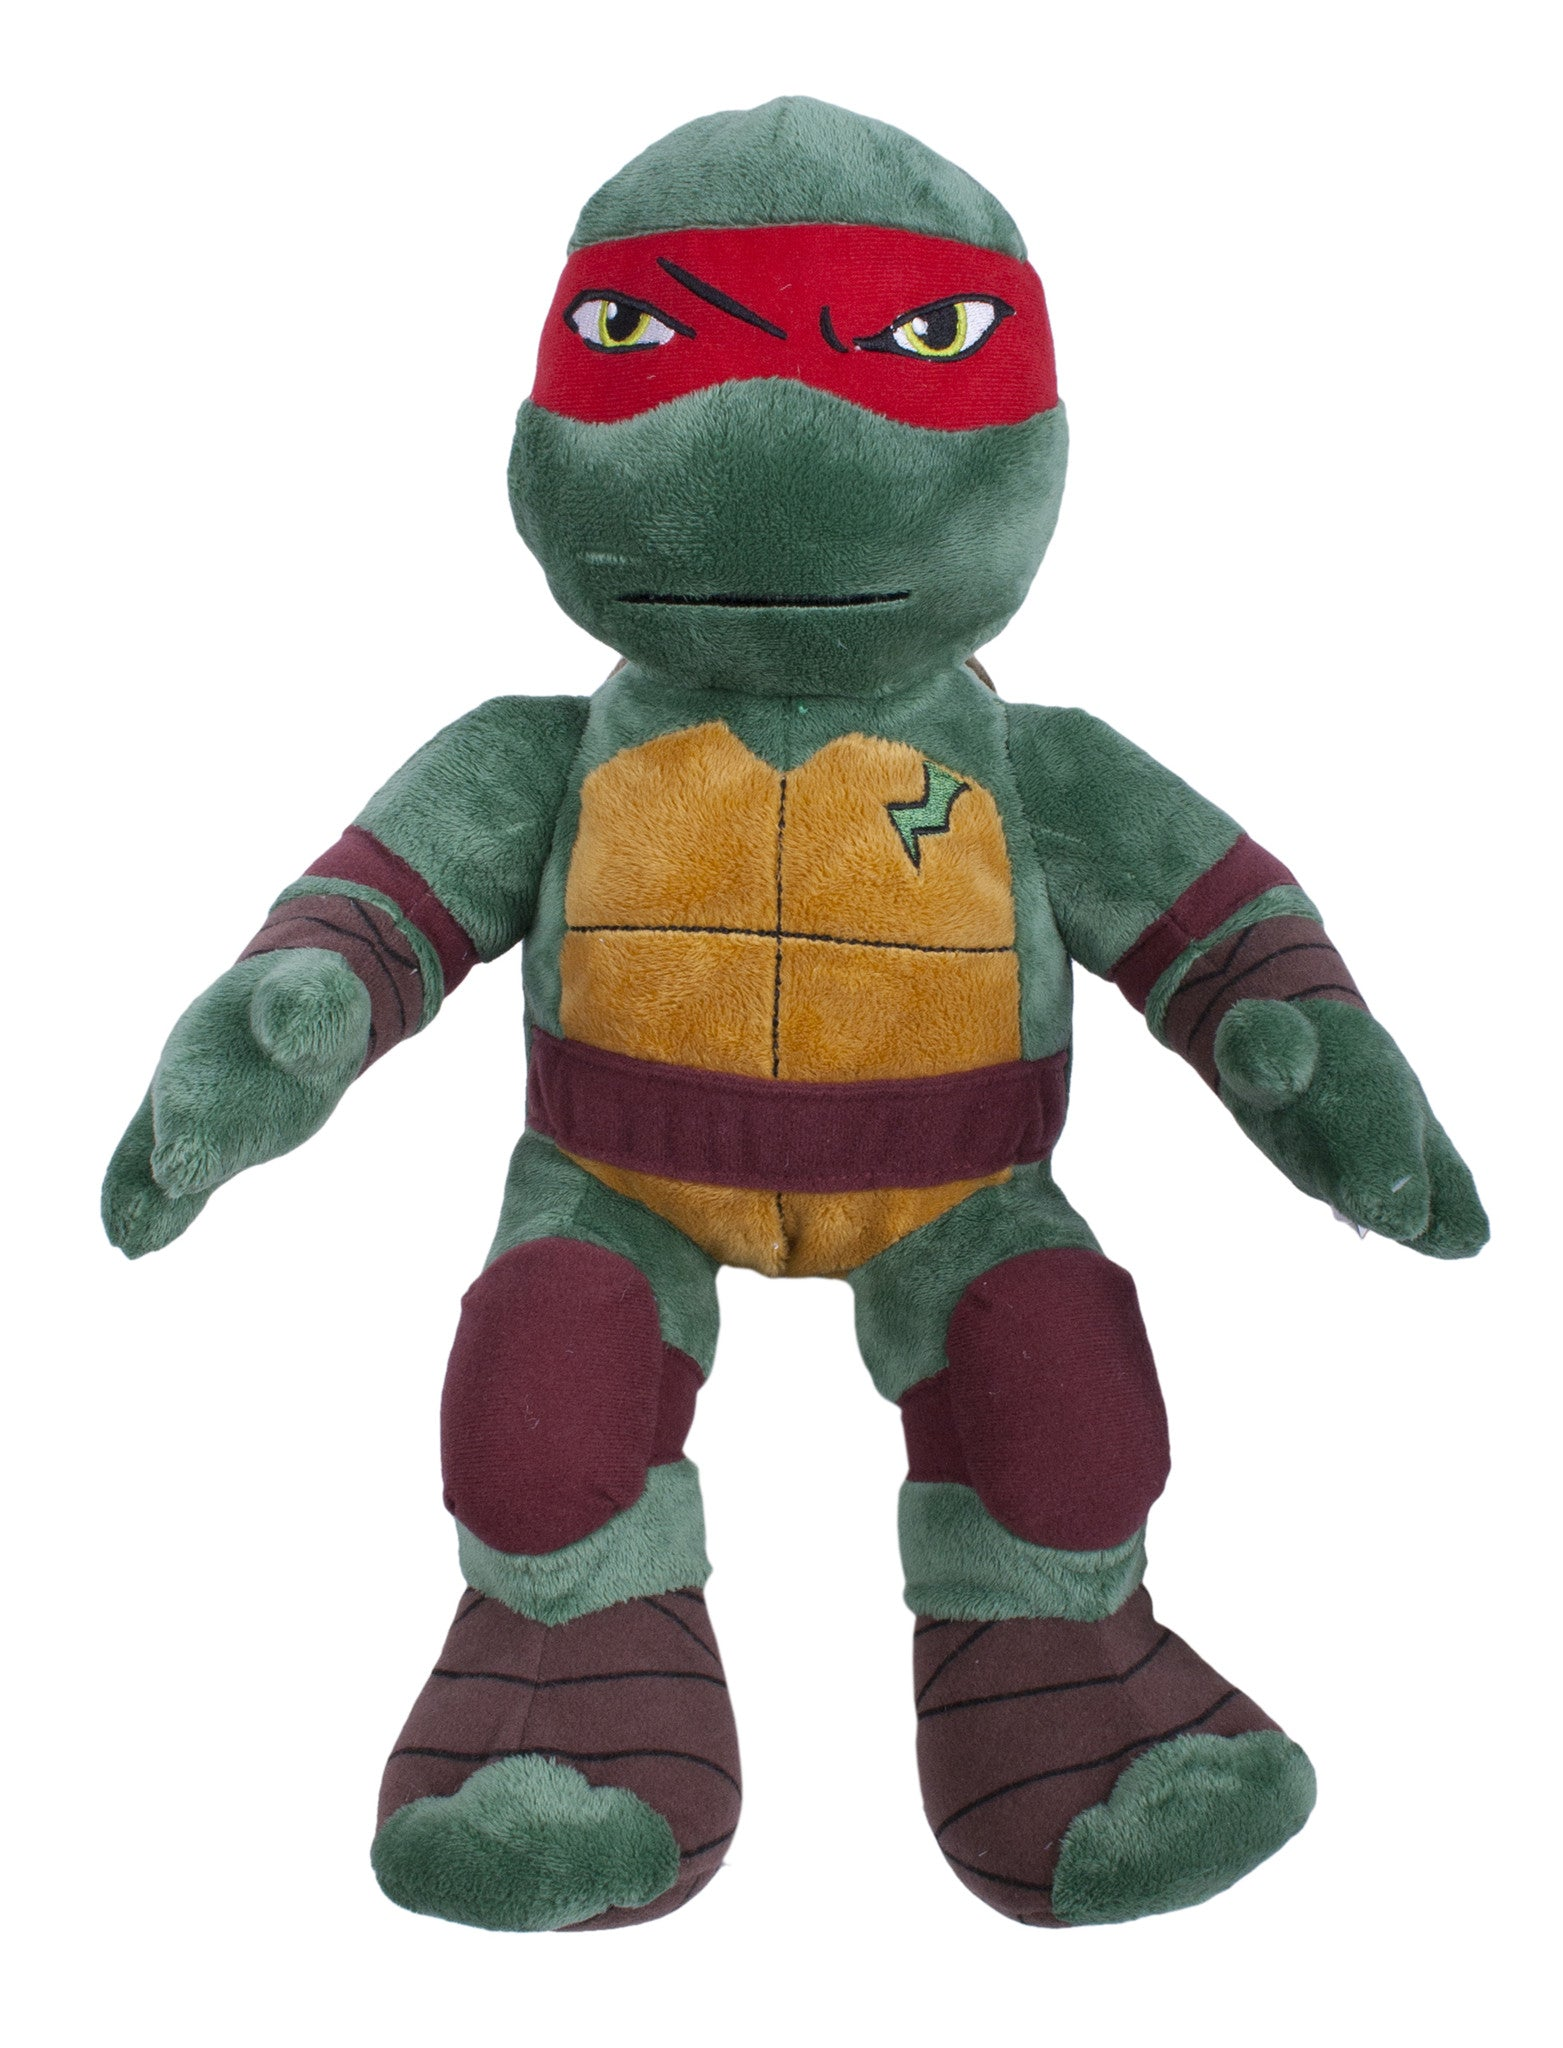 Teenage Mutant Ninja Turtles Raphael Plush Toy